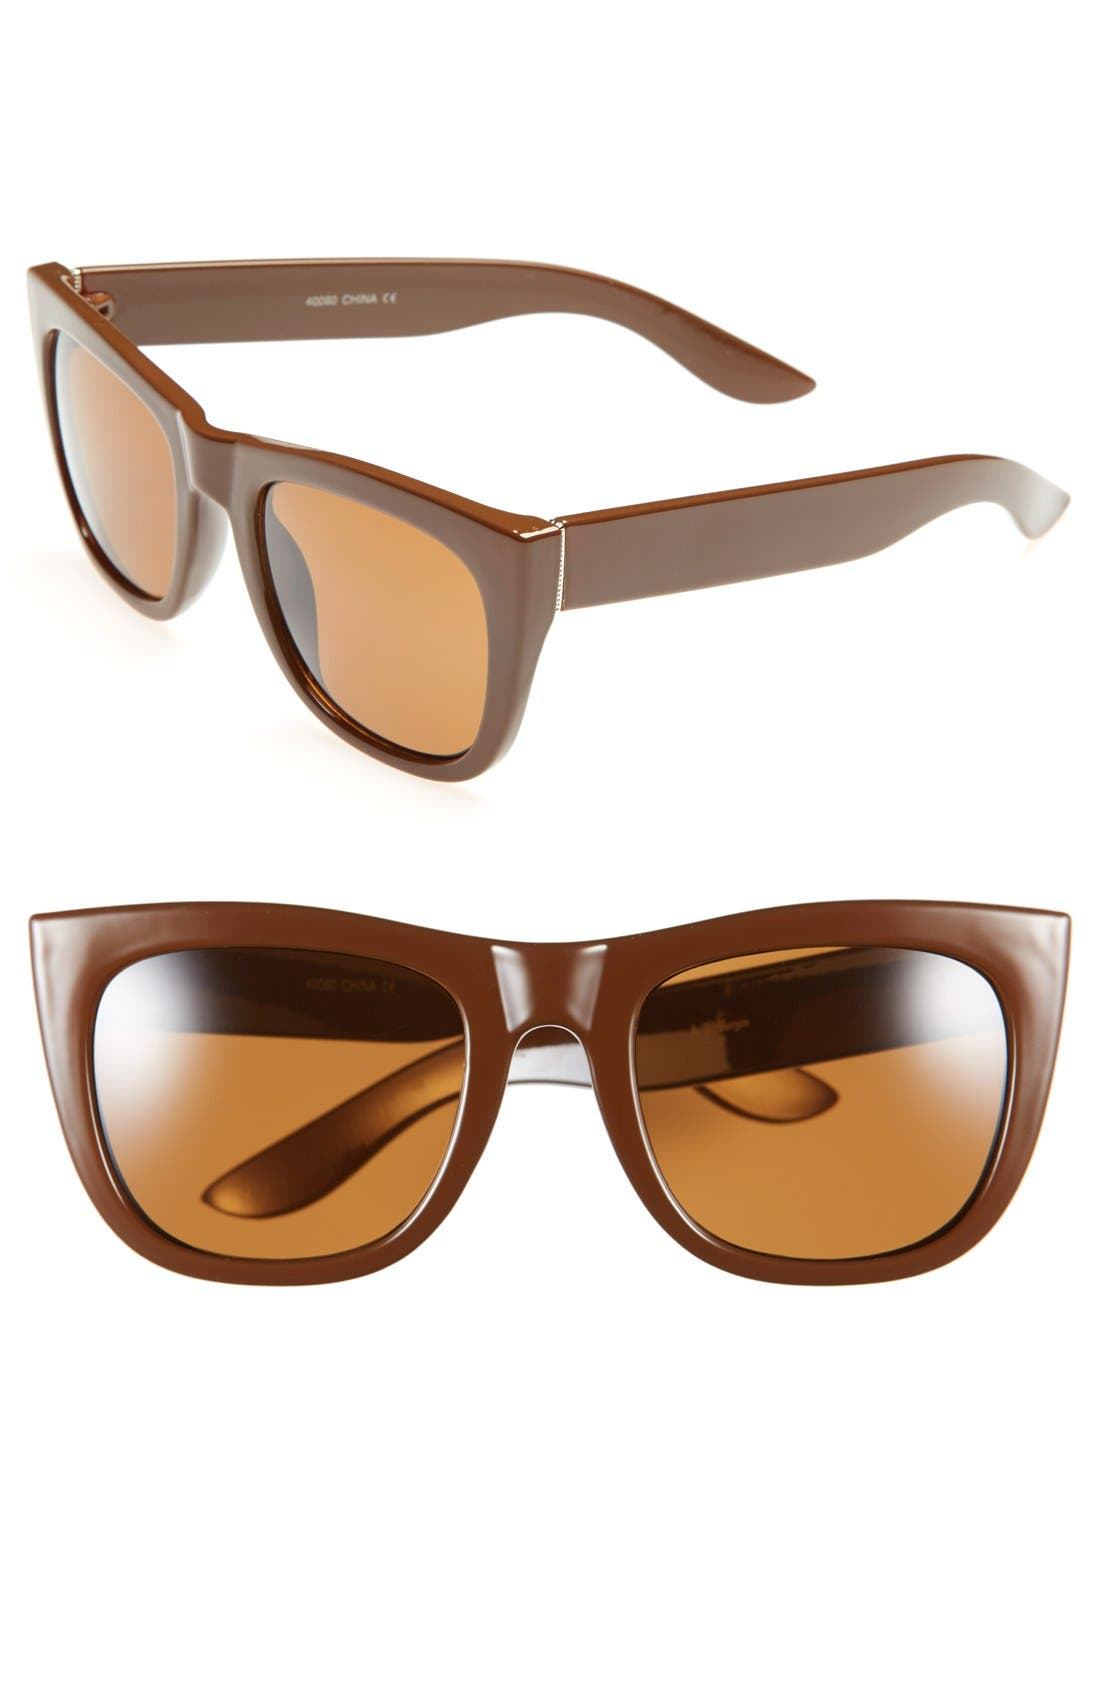 Main Image - A.J. Morgan 'Manage' 51mm Sunglasses